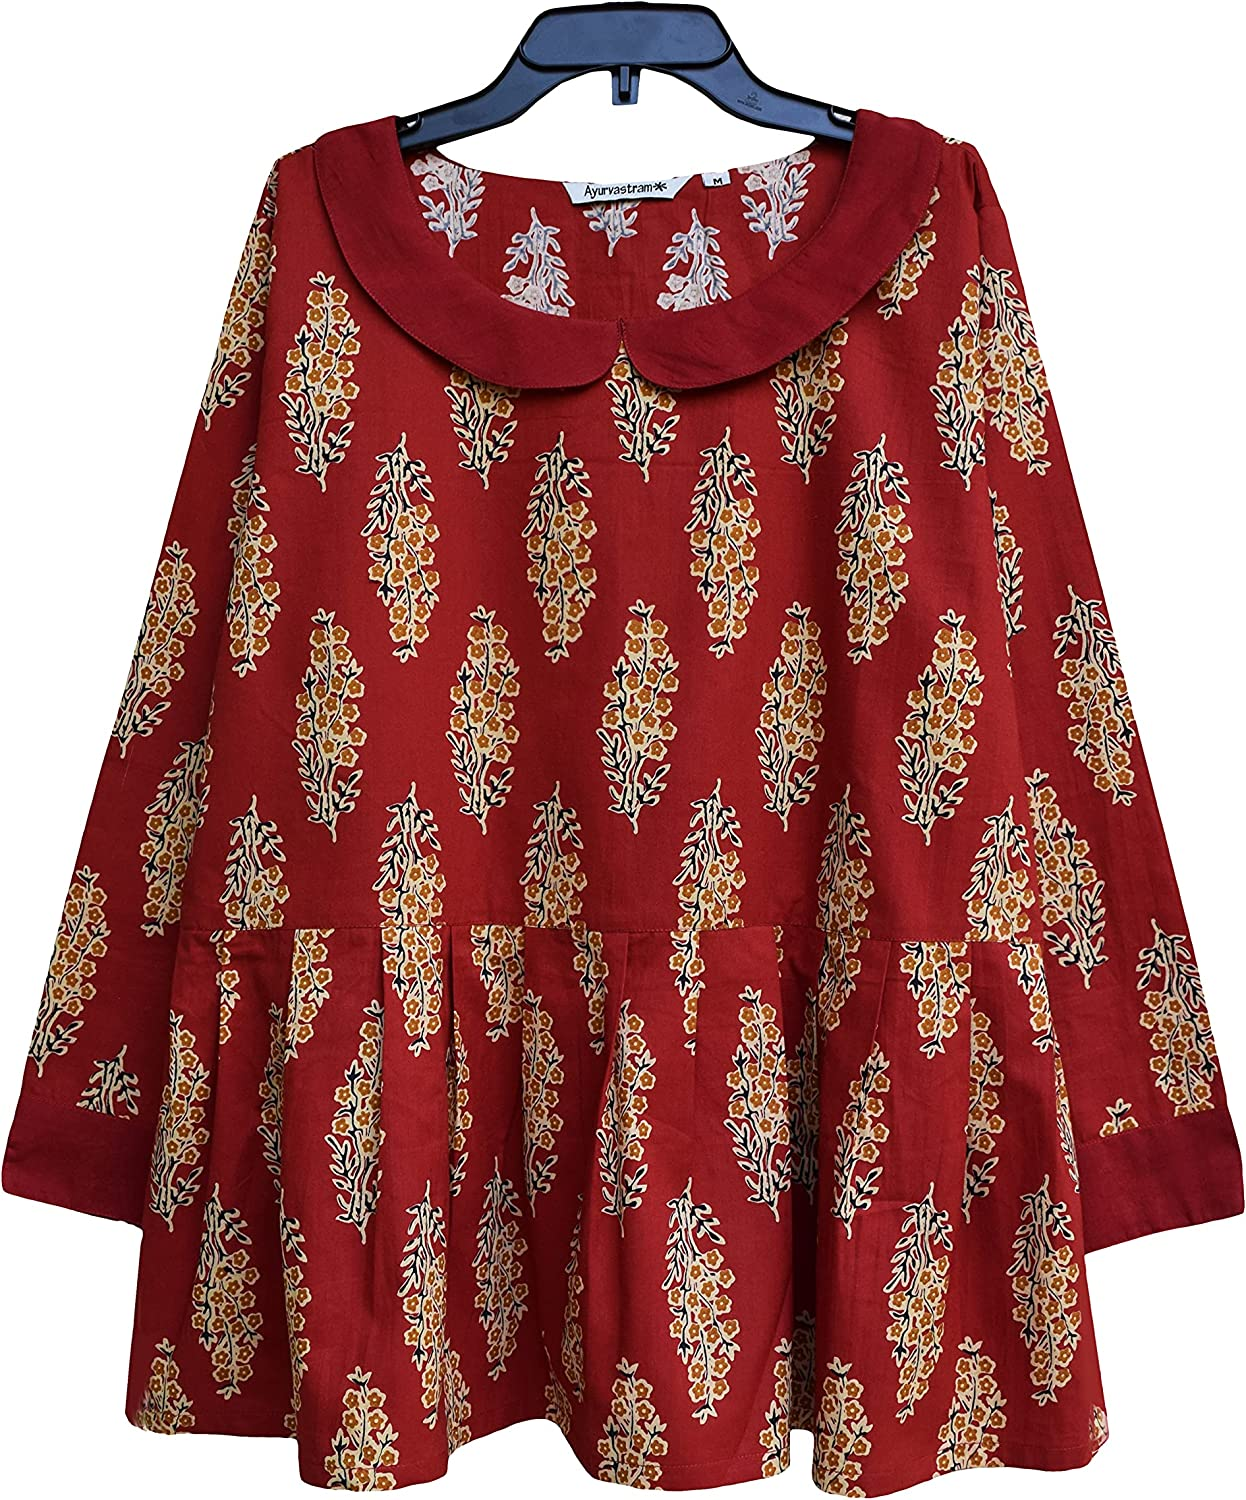 shop AVNI Printed Soft Luxury Cotton Applique look Embroiderd Hand